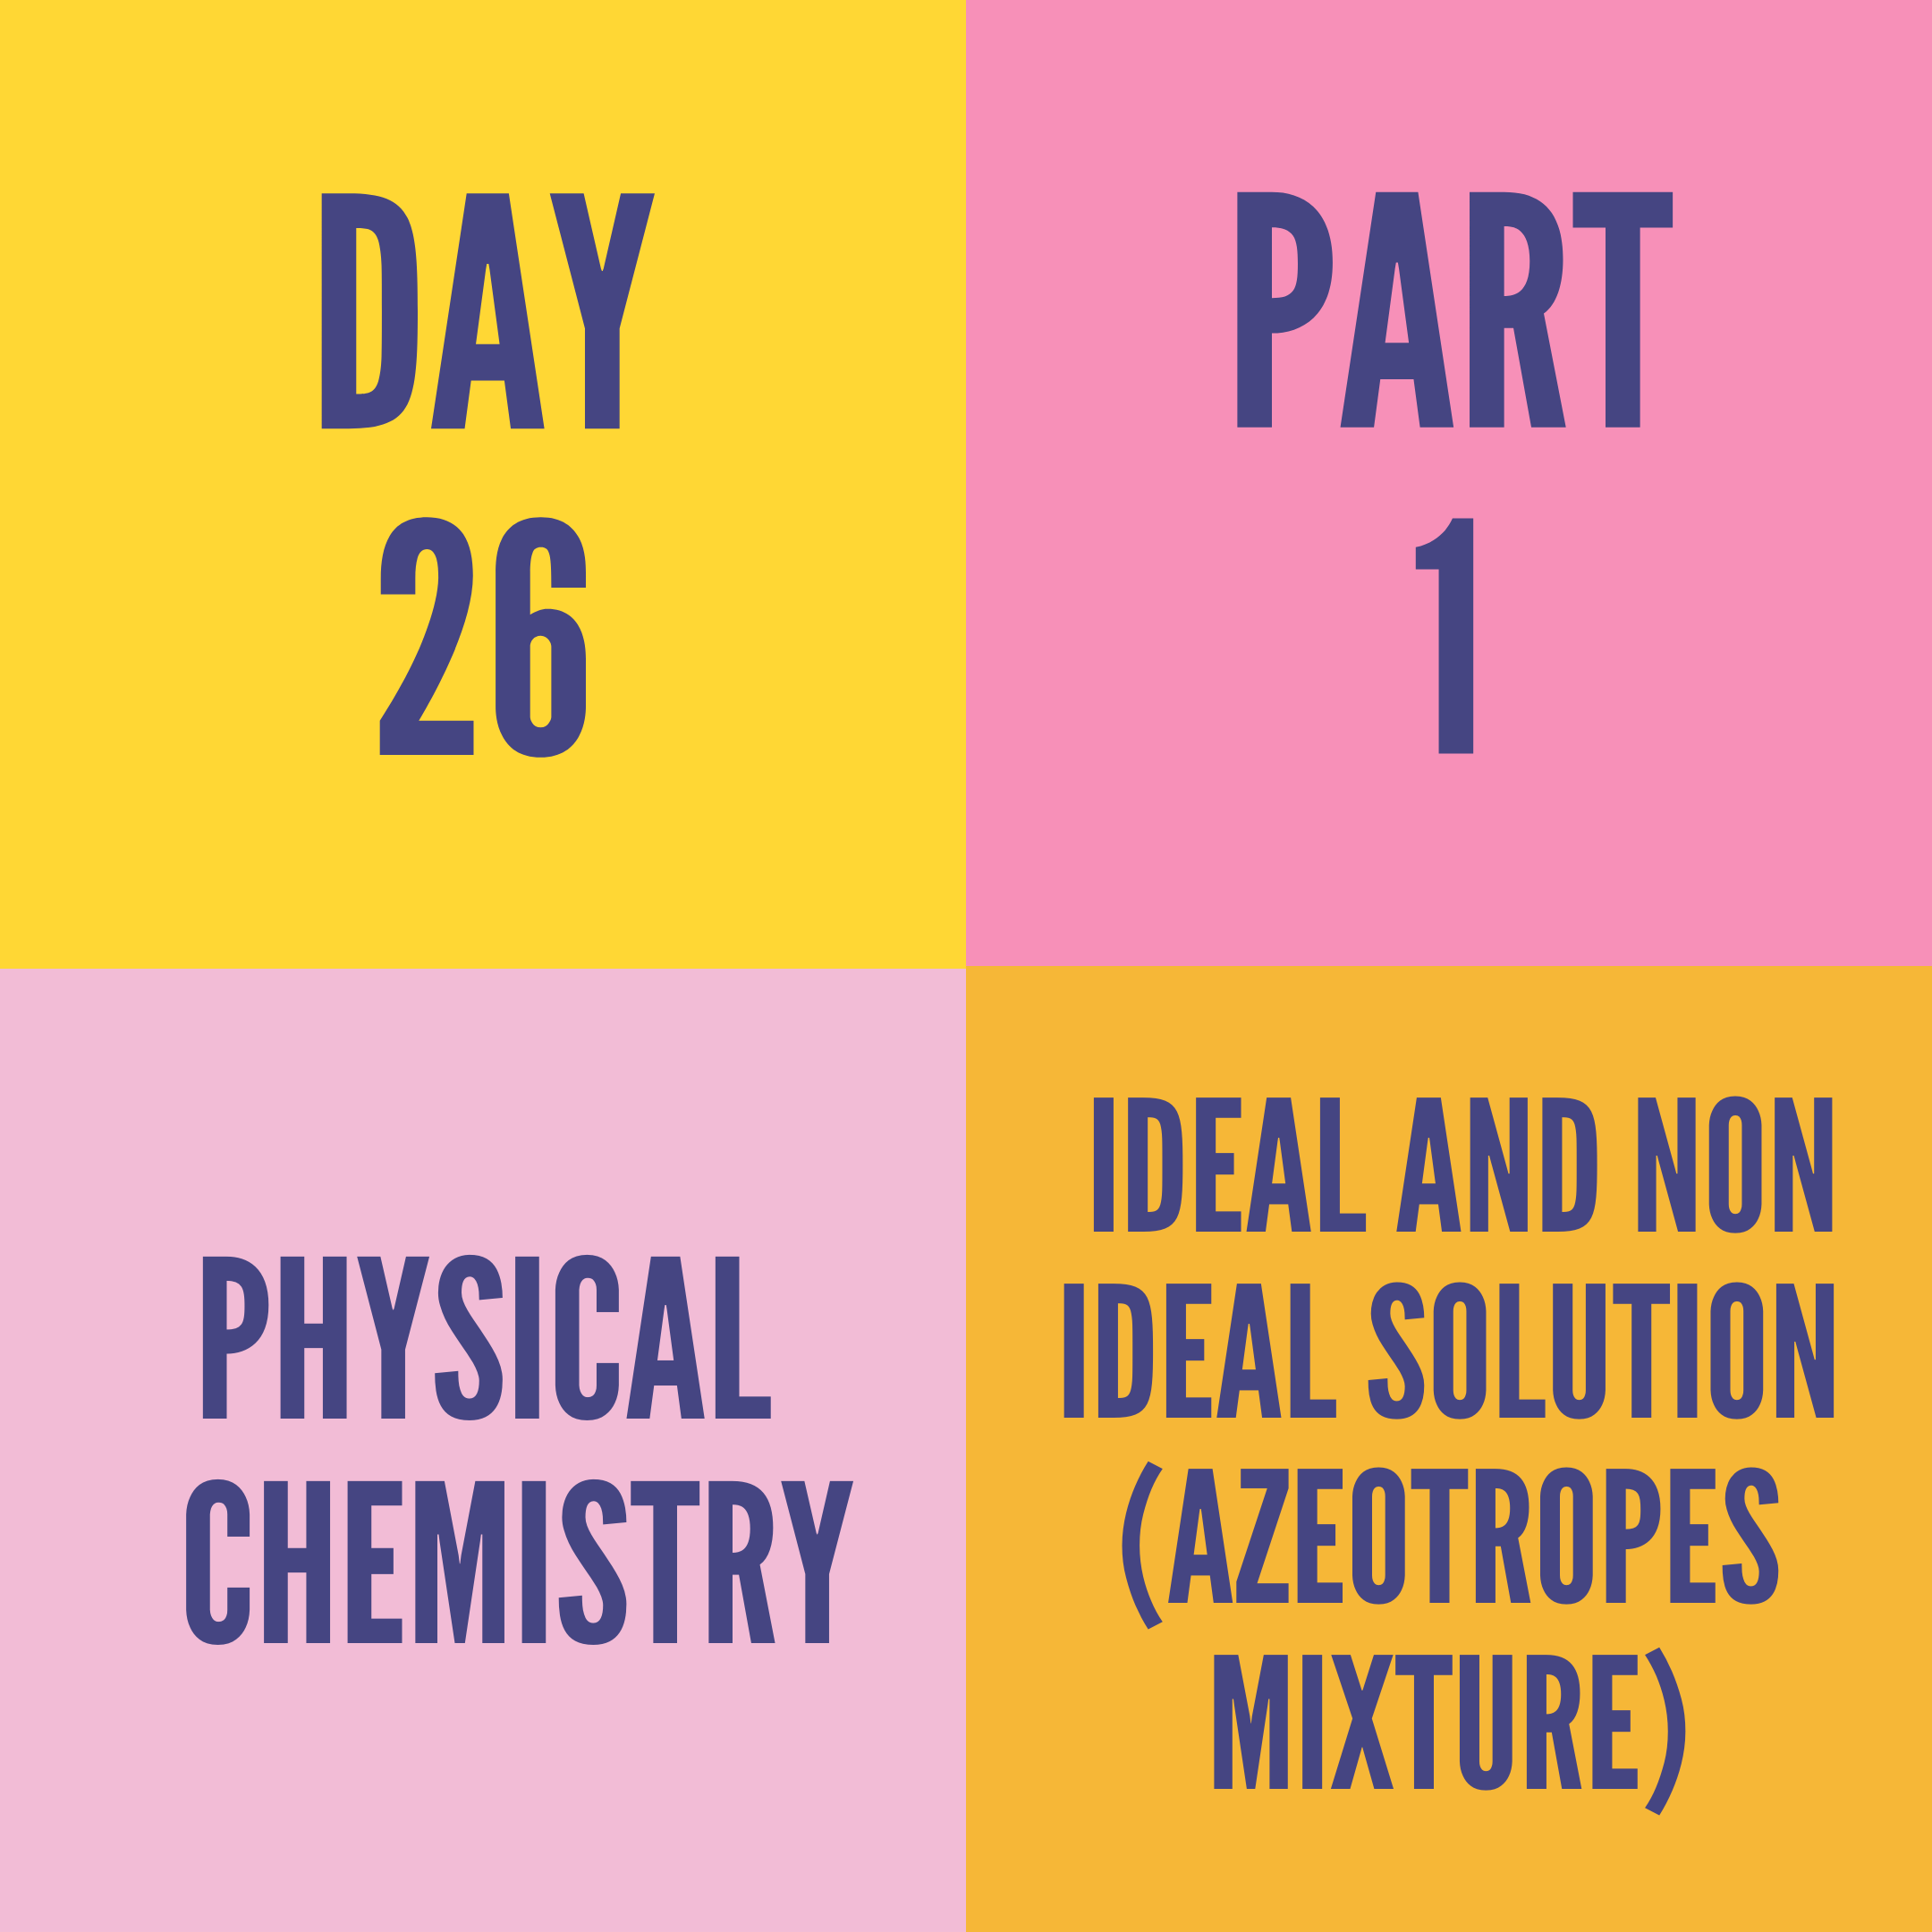 DAY-26 PART-1 IDEAL AND NON IDEAL SOLUTION (AZEOTROPES MIXTURE)